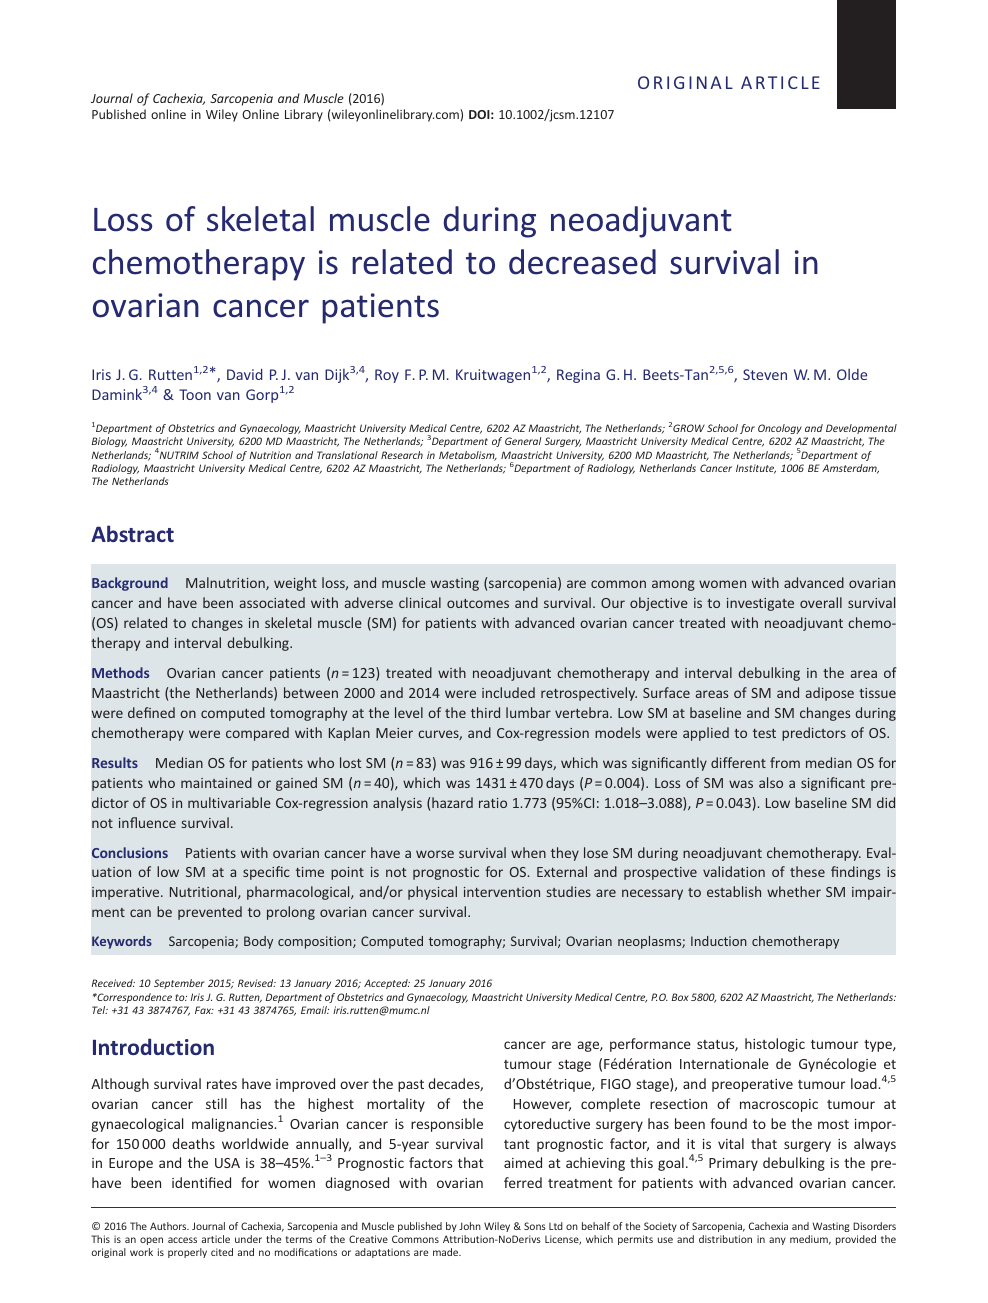 Loss Of Skeletal Muscle During Neoadjuvant Chemotherapy Is Related To Decreased Survival In Ovarian Cancer Patients Topic Of Research Paper In Health Sciences Download Scholarly Article Pdf And Read For Free